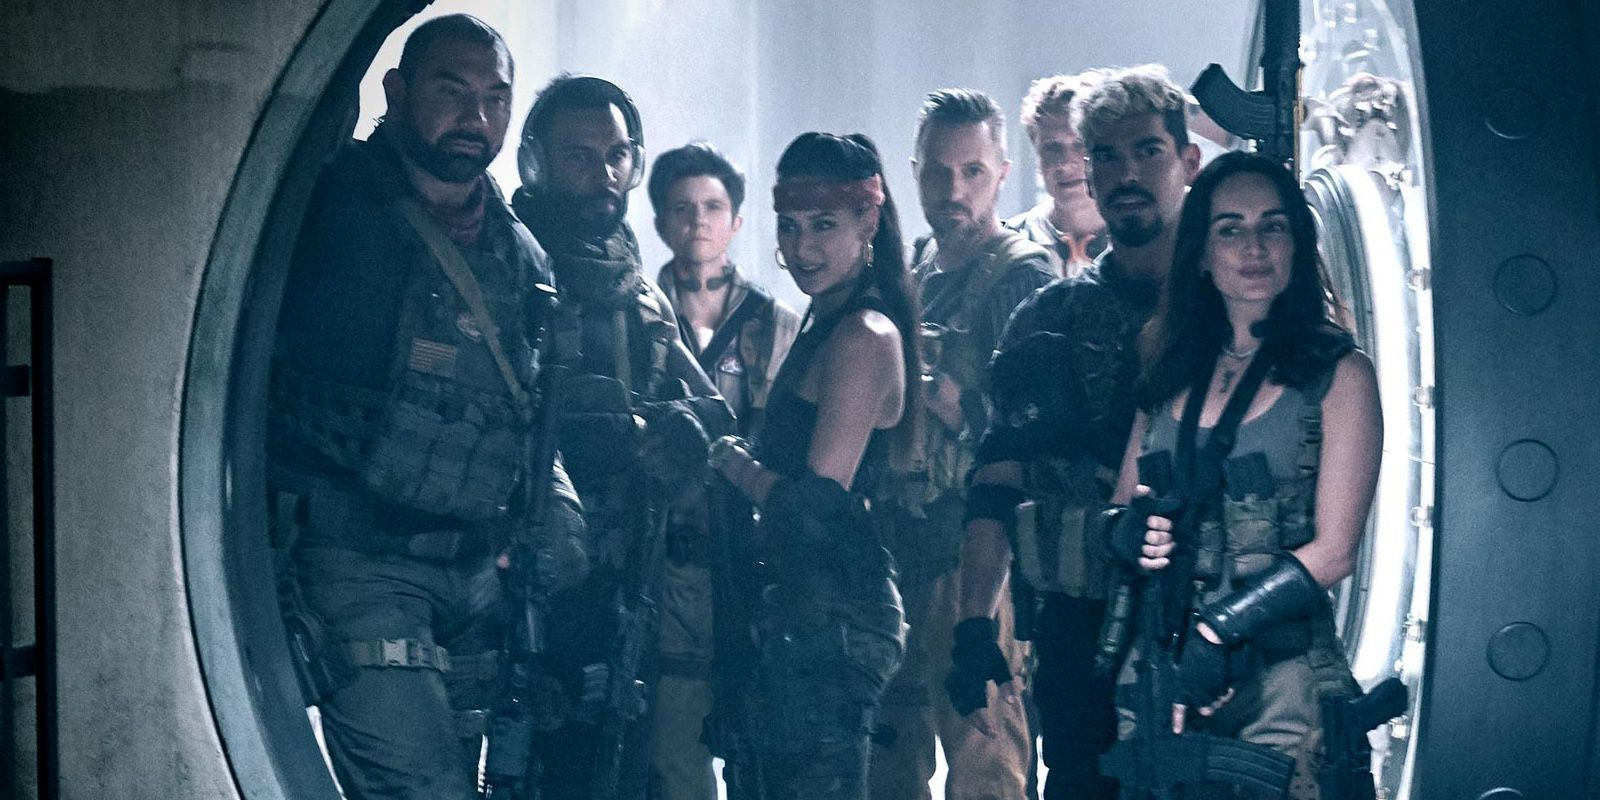 Zack Snyder's Army Of The Dead to be released on Netflix